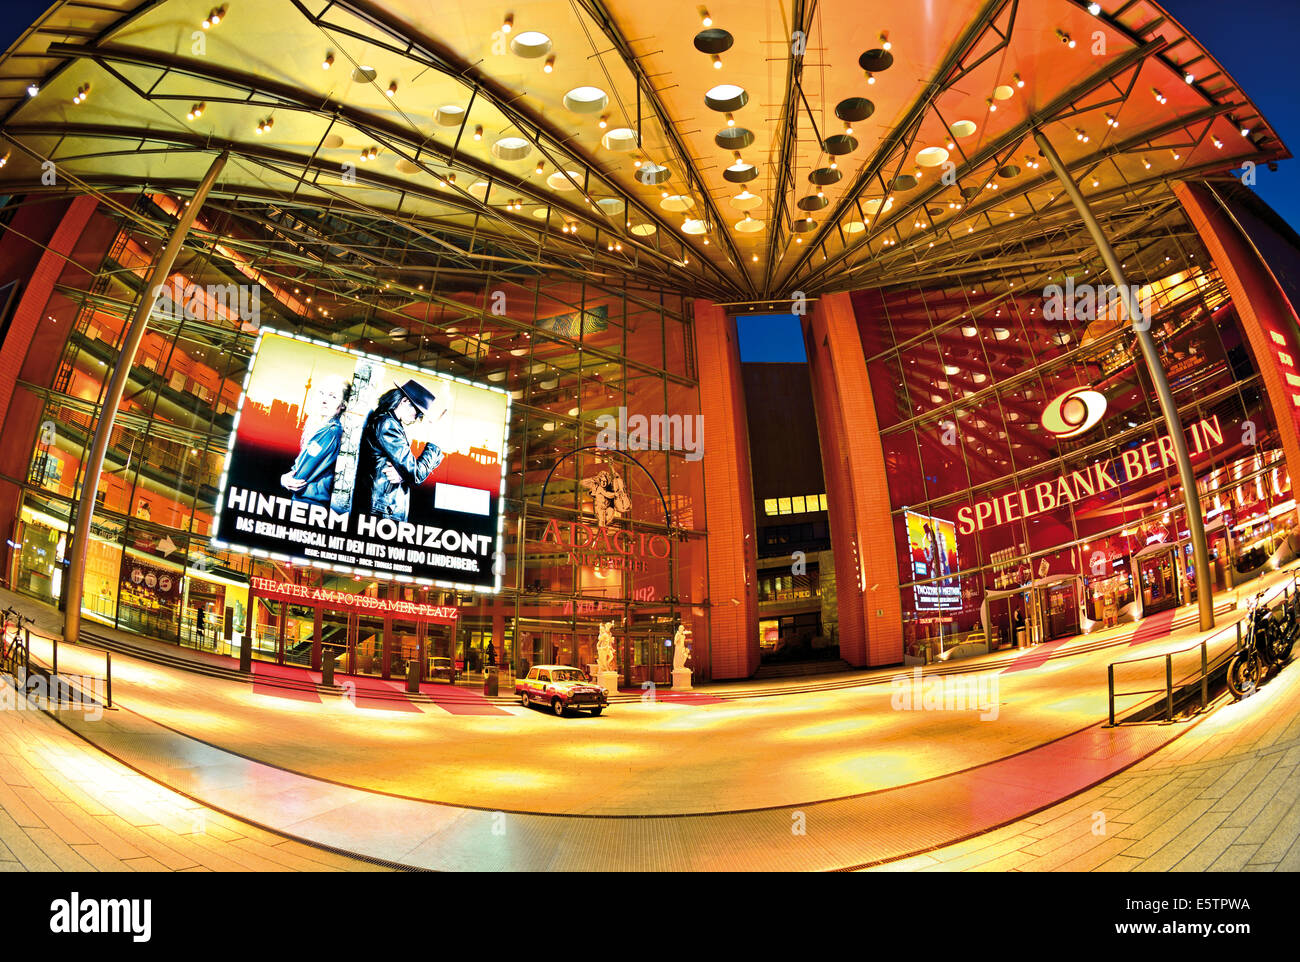 Germany, Berlin: Nocturnal view of the Stage Theater at Potsdamer Platz with musical 'Hinterm Horizont' - Stock Image